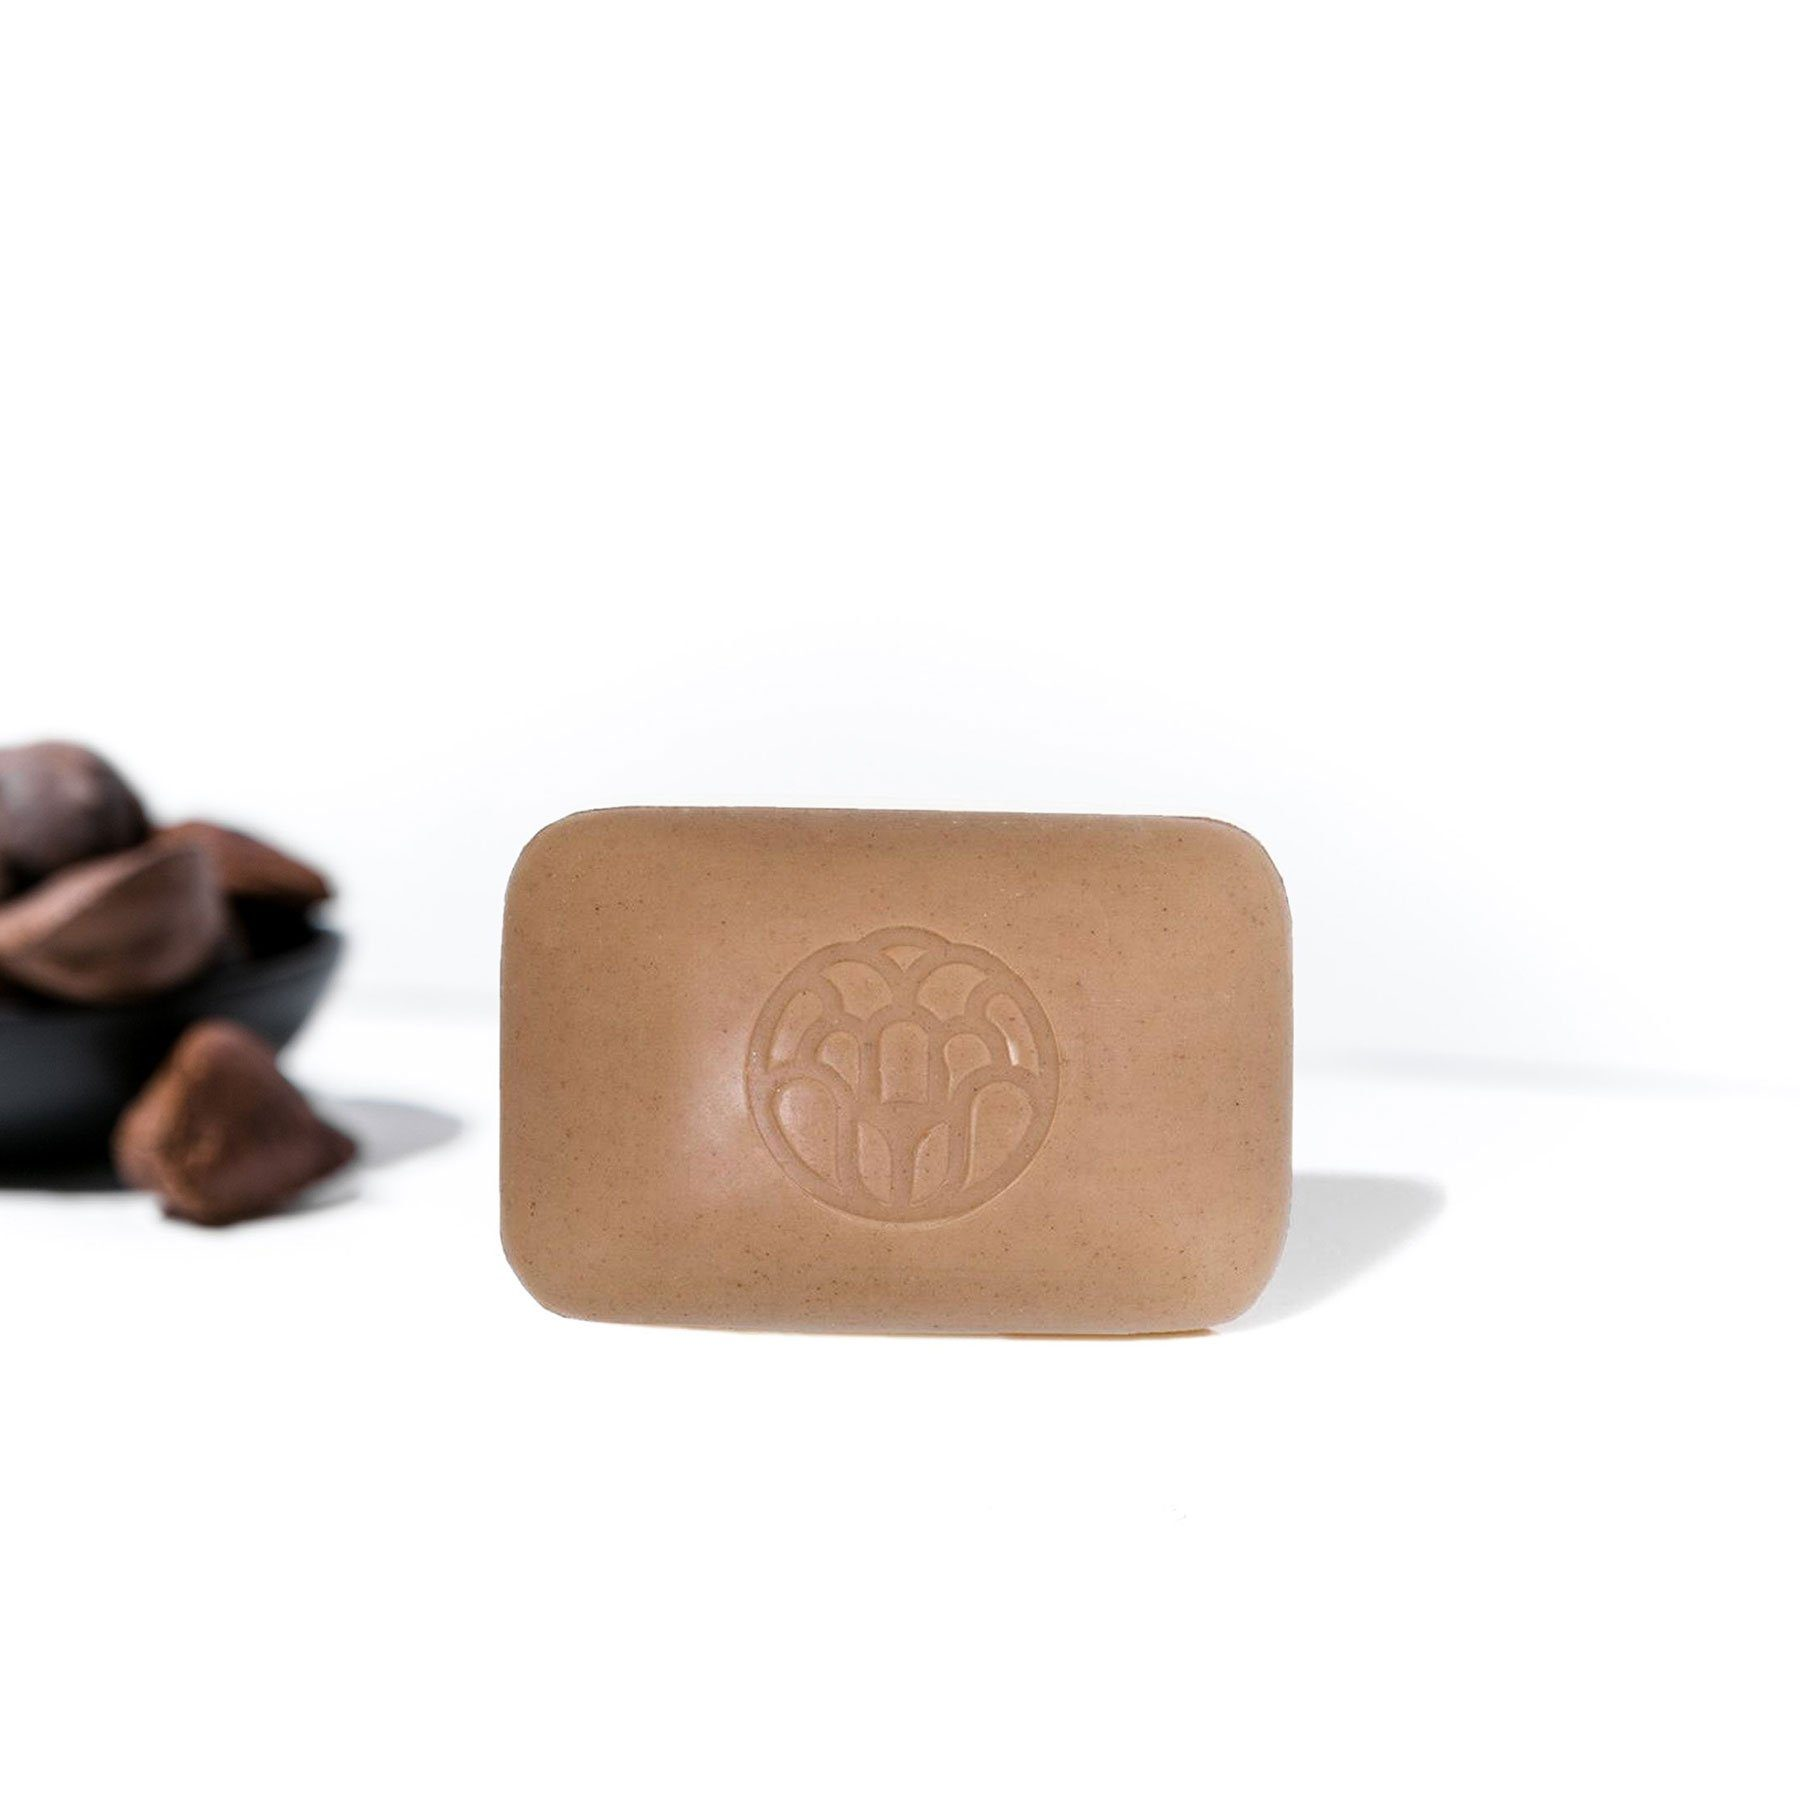 Brazilian Glow Vegan Soap Exfoliating Clay Bar - Teadora